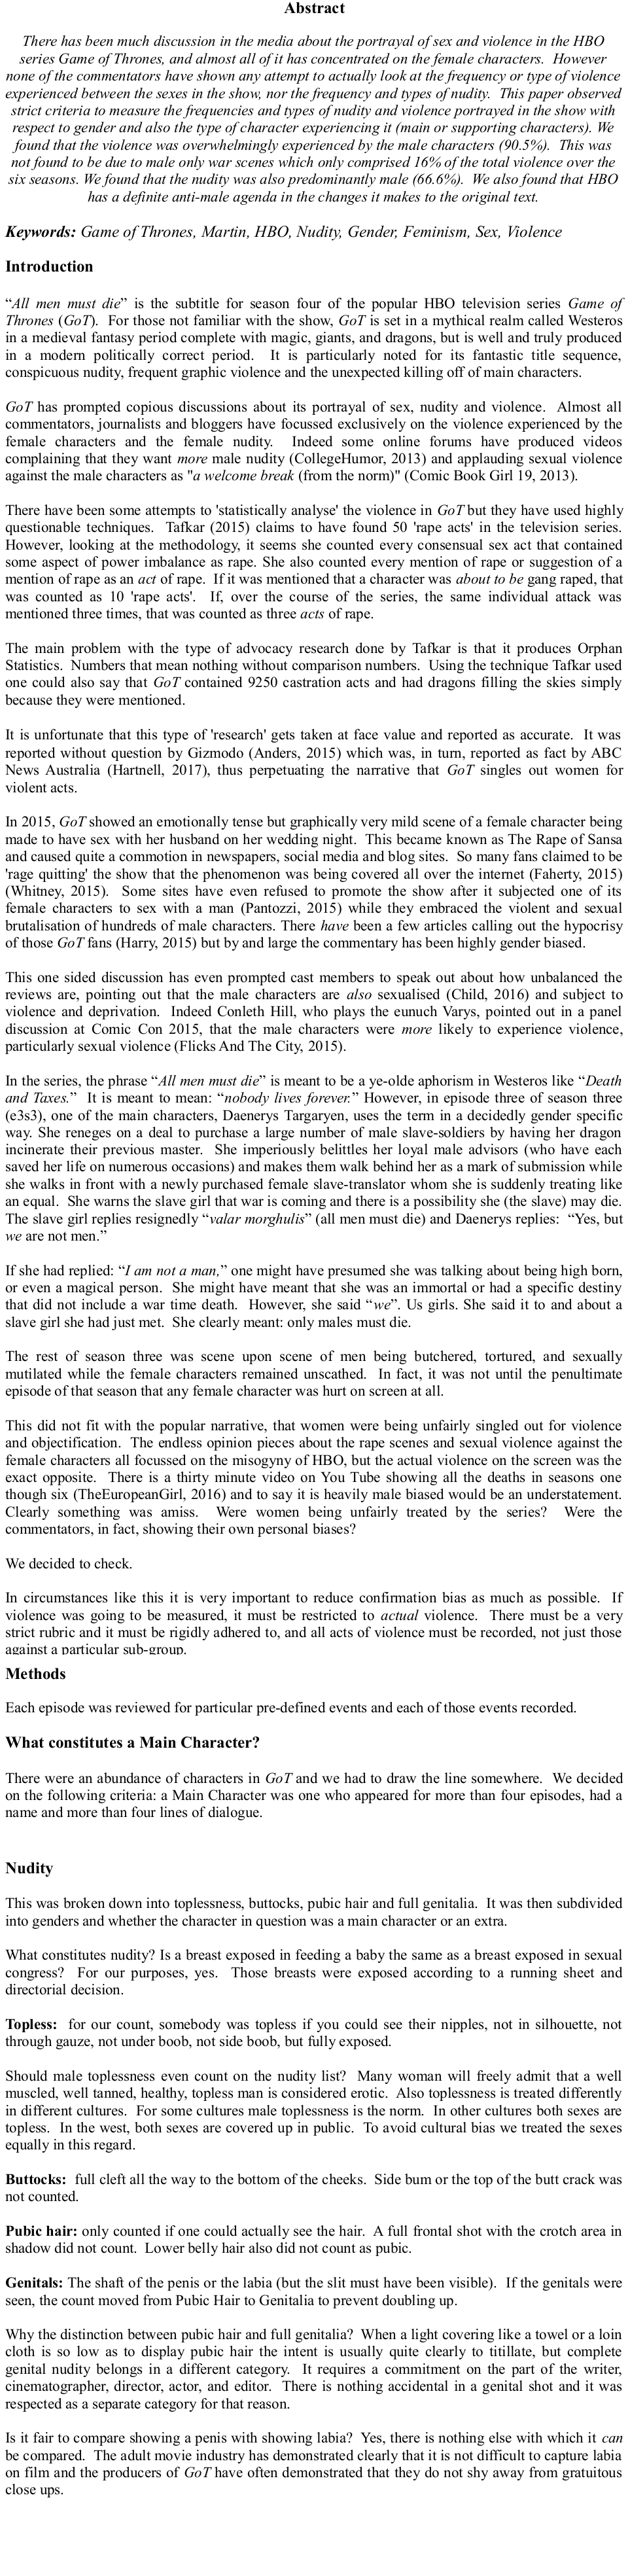 GOT_review_rewrite_03 page 1-3